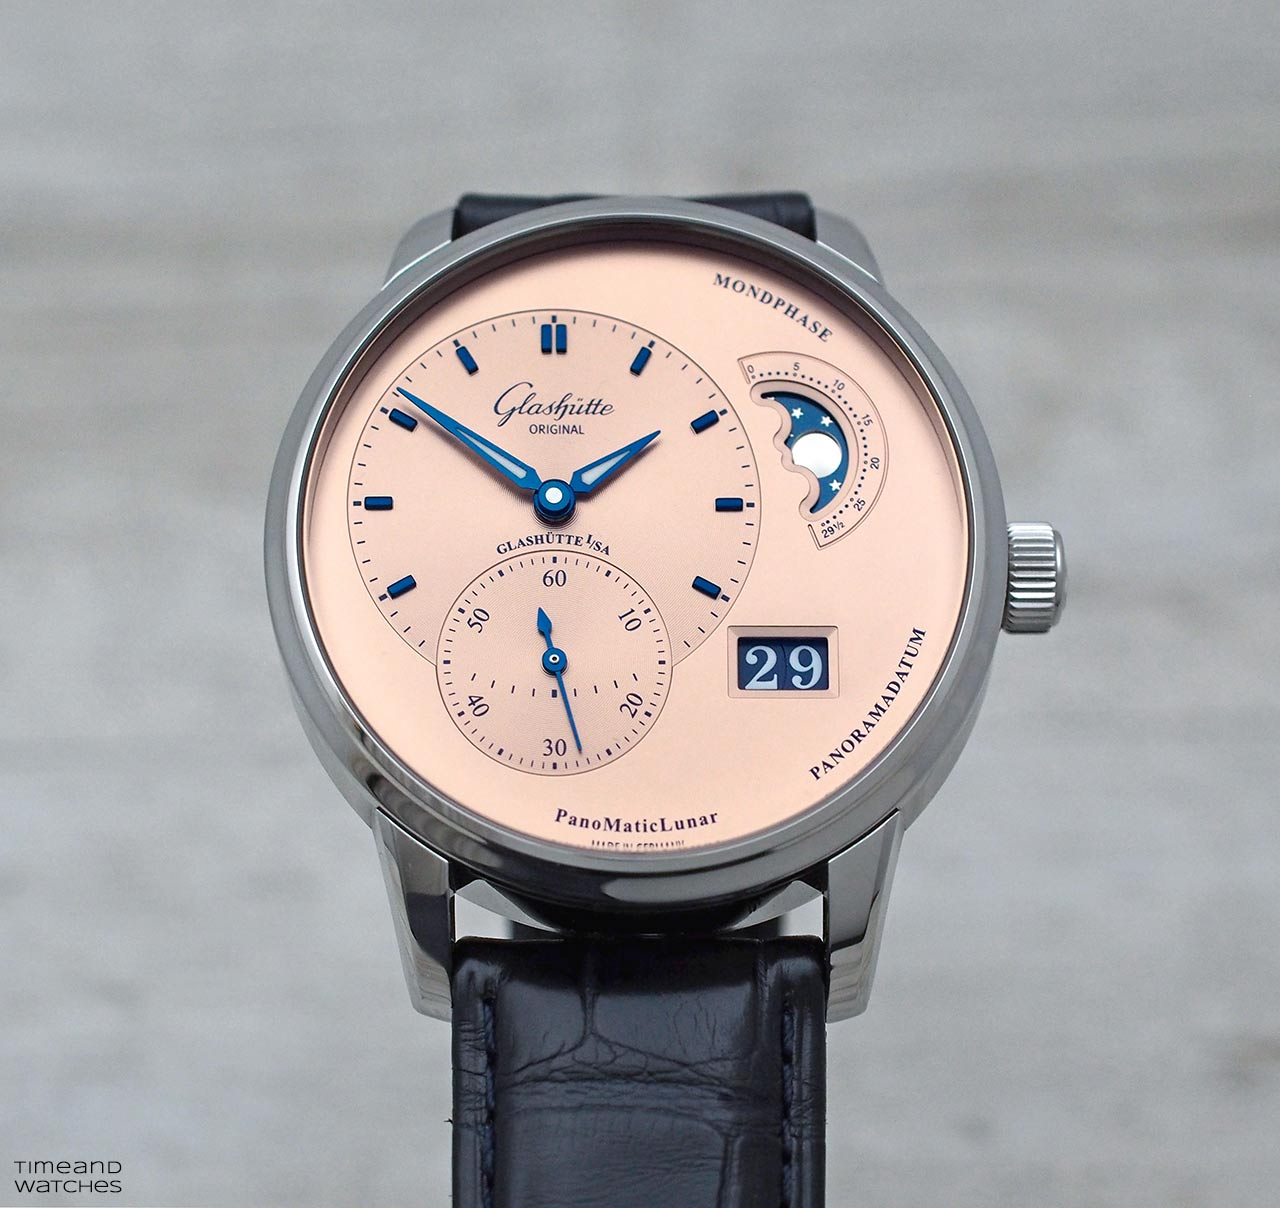 Hands On Review Glashutte Original Panomaticlunar Time And